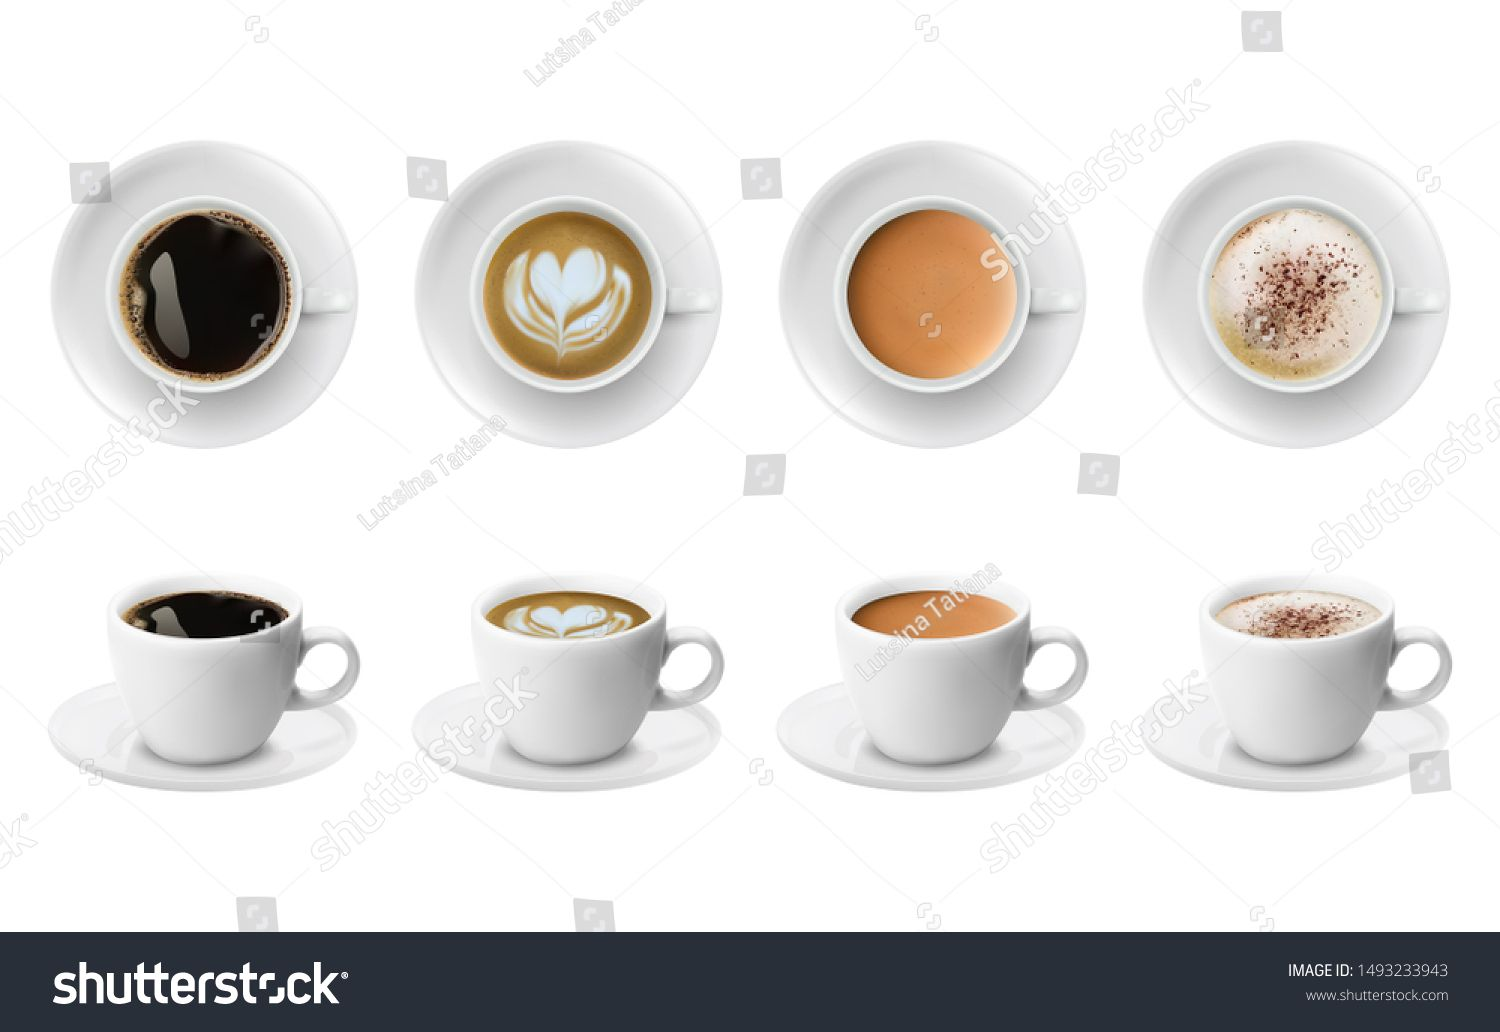 3d realistic different sorts of coffee in white cups view from the top and side. Cappuccino latte americano espresso cocoa in realistic cups. 3d model for cafe menu. #Sponsored , #Sponsored, #view#cups#side#top